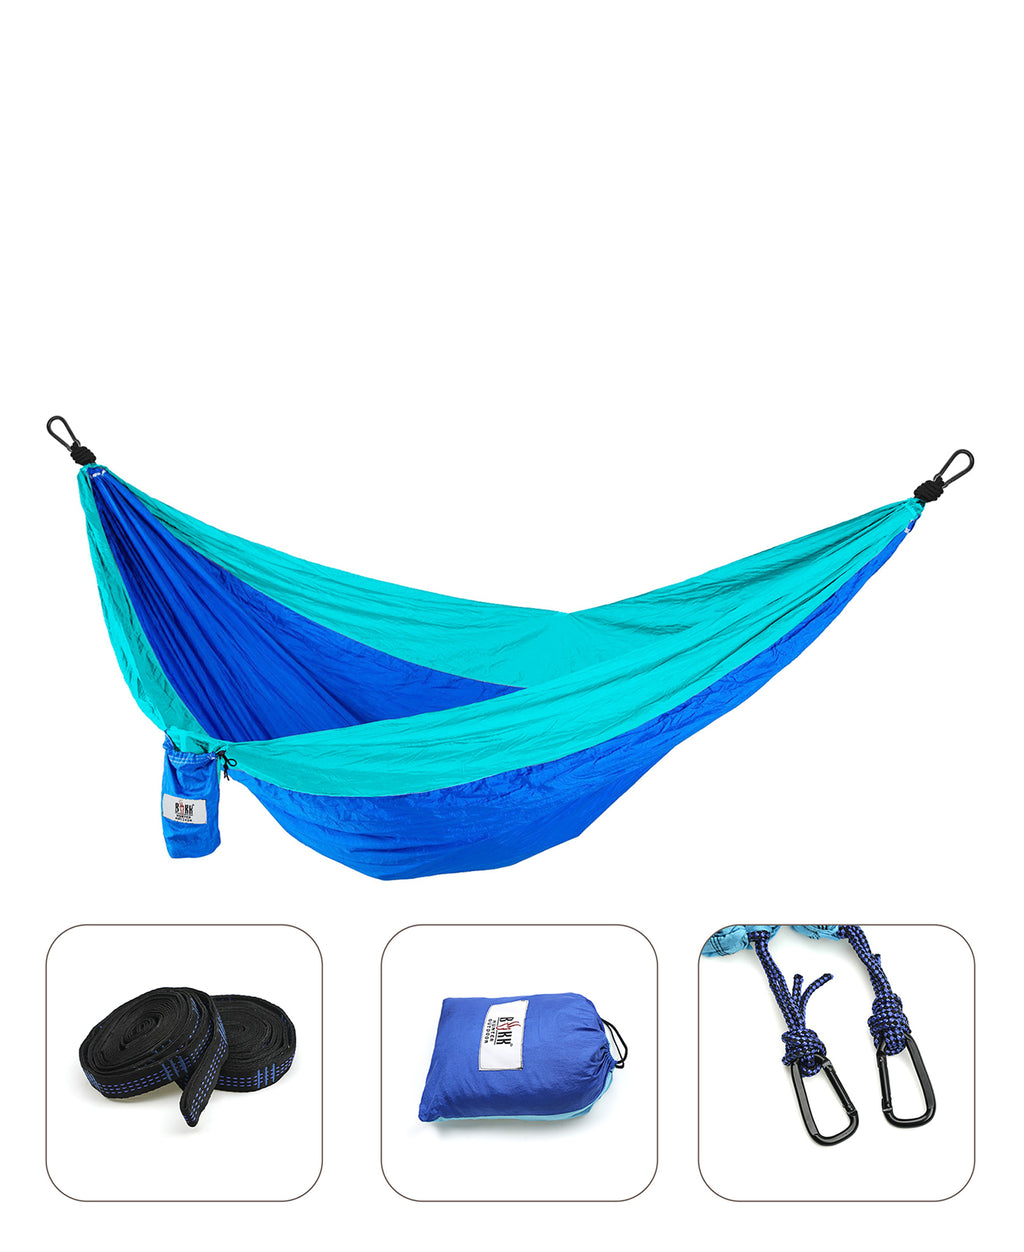 Compactable Double Hammock - Blue